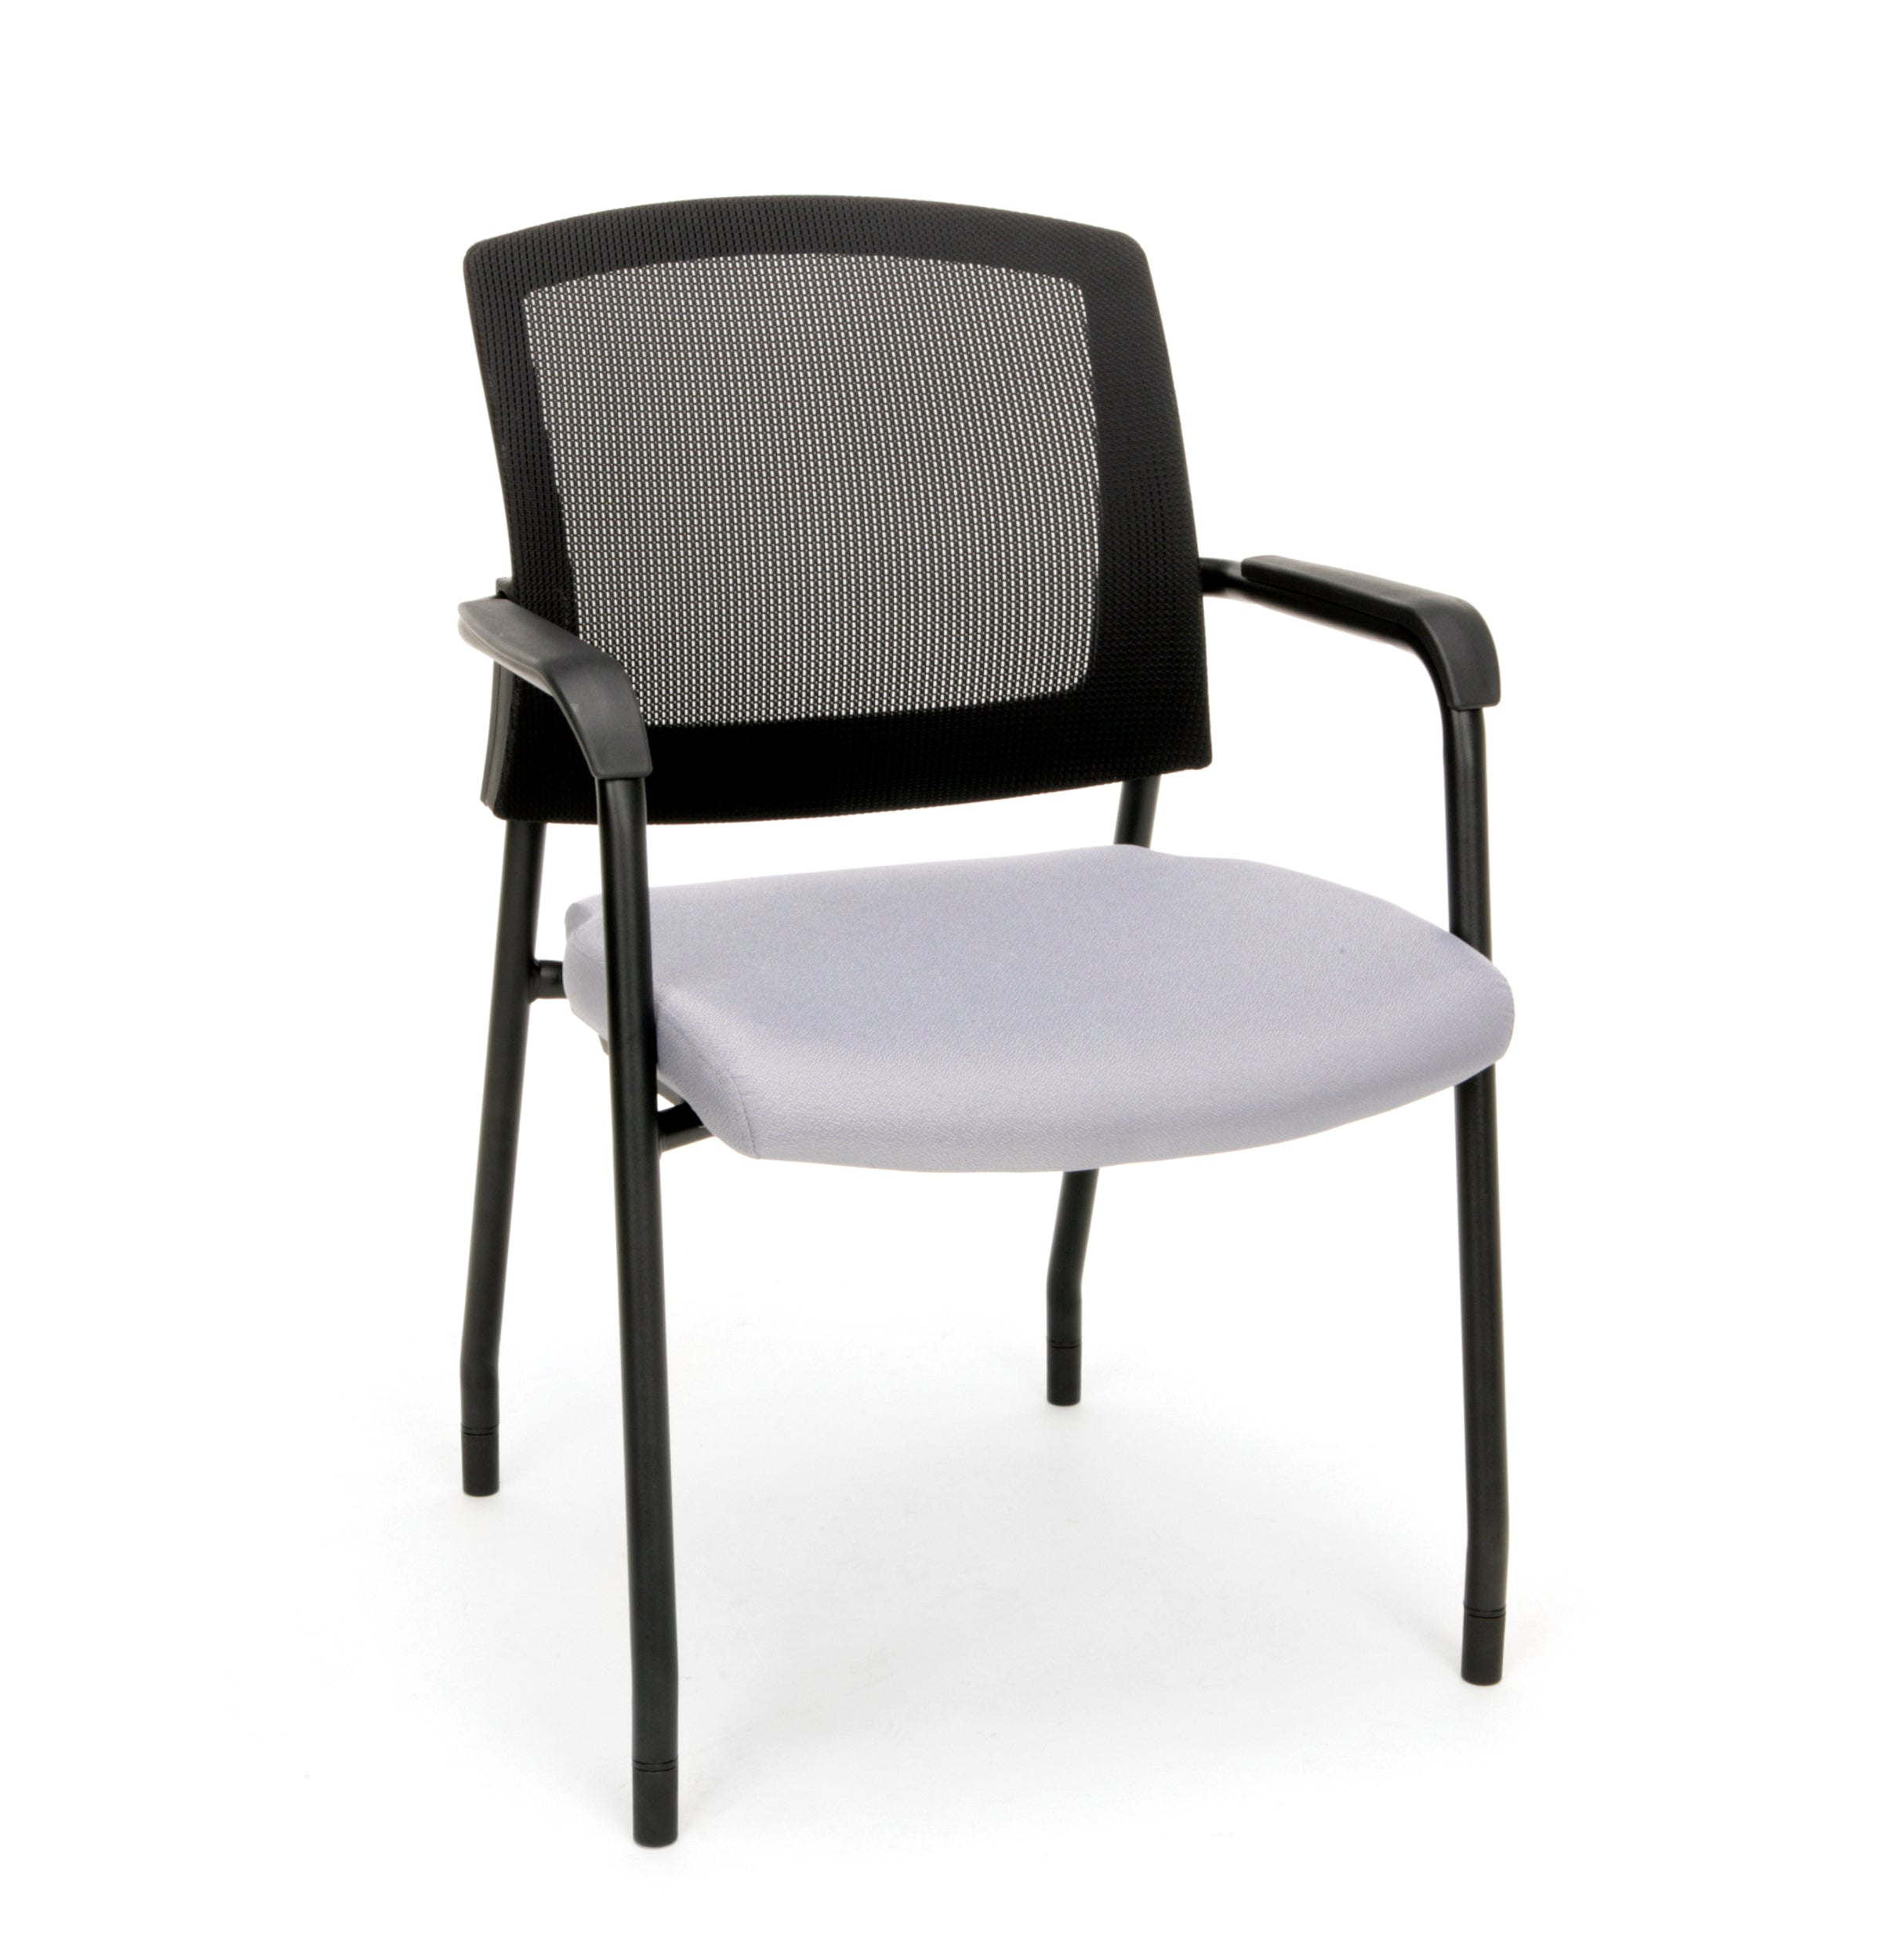 Ofminc Model 424 Mesh Chair Guest / Reception Chair with Arms